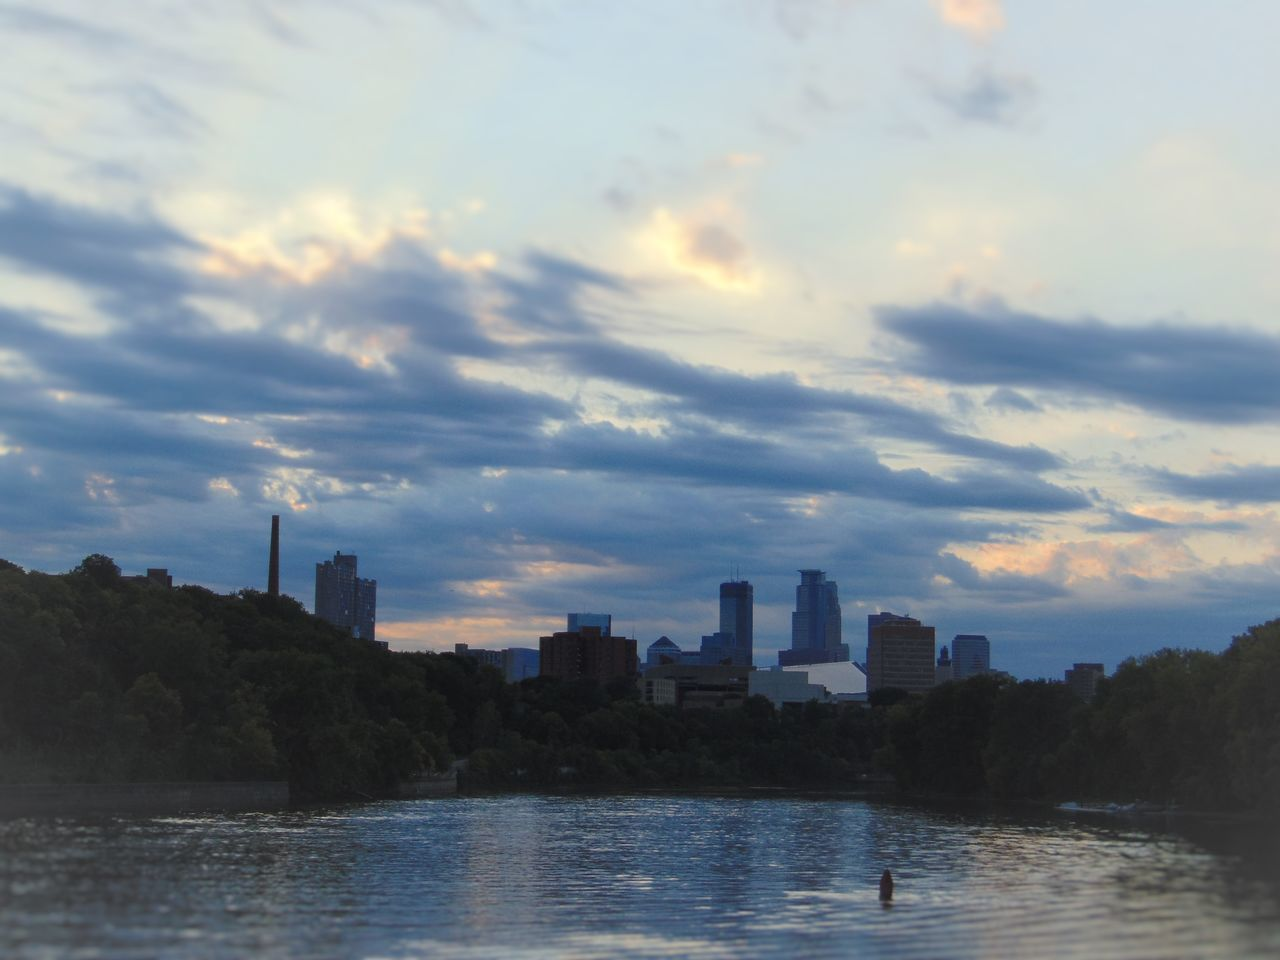 Shot from the University of Minnesota Boat House, off the Mississippi looking towards downtown. Architecture Capture The Moment City Cityscape Cityscapes Cloud - Sky Clouds Cloudscape Day Downtown Minneapolis Minnesota Nature No People Outdoors Sky Skyscraper Sunset Sunset #sun #clouds #skylovers #sky #nature #beautifulinnature #naturalbeauty #photography #landscape Tabphotography Urban Skyline Urbanscape Water